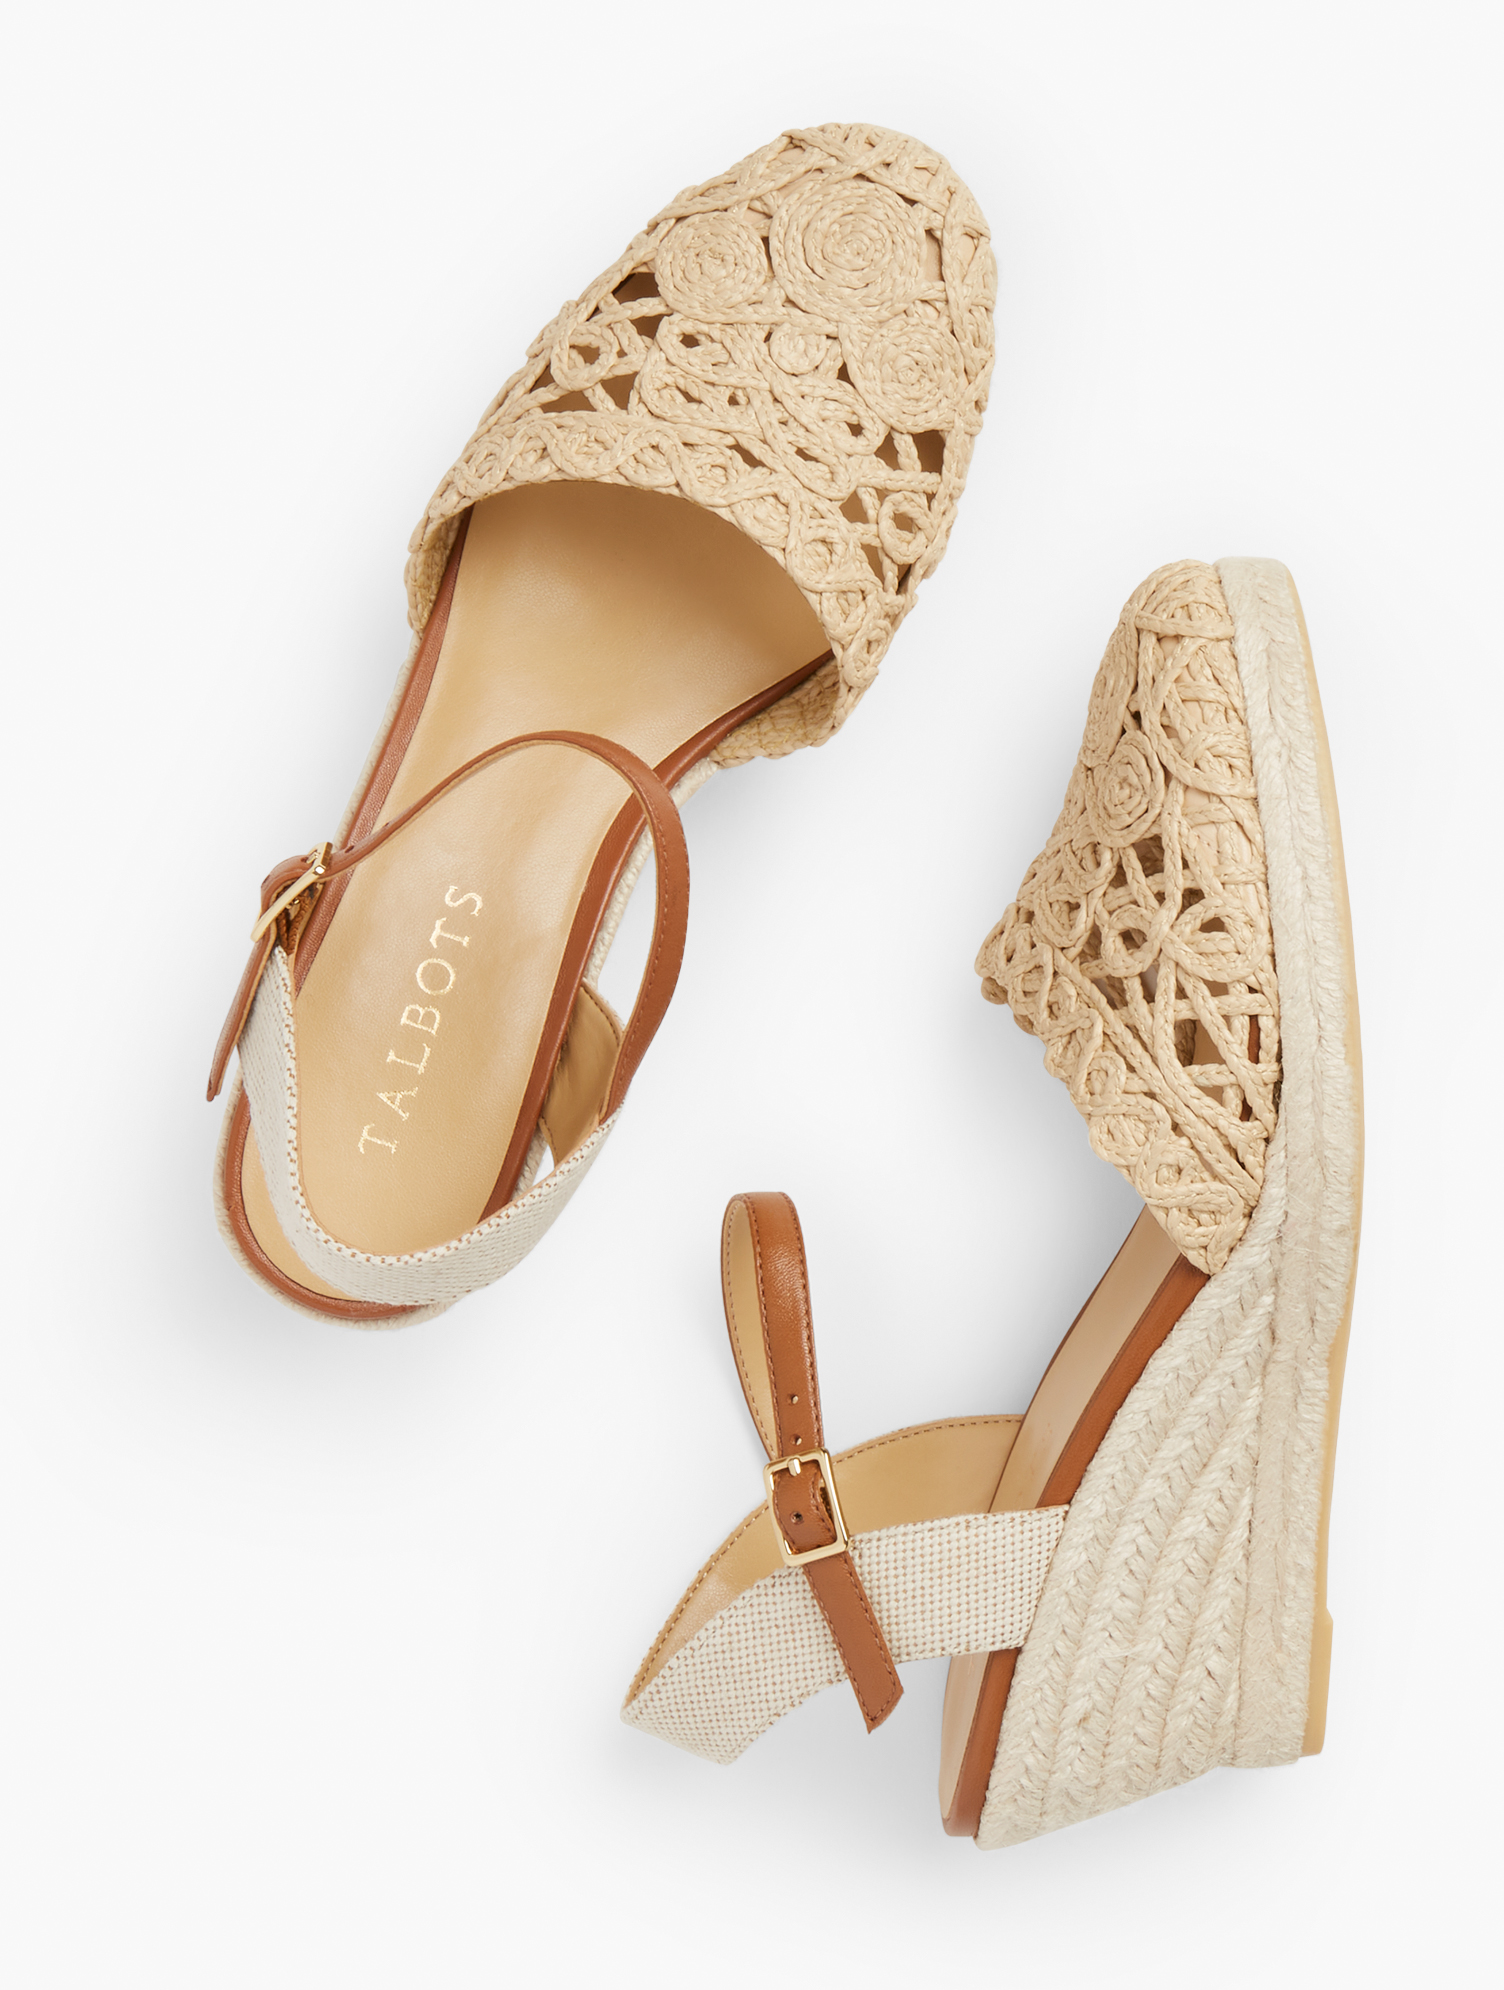 70s Clothes | Hippie Clothes & Outfits Lyndsay Lace  Raffia Espadrille Wedges - Natural - 11M Talbots $129.00 AT vintagedancer.com